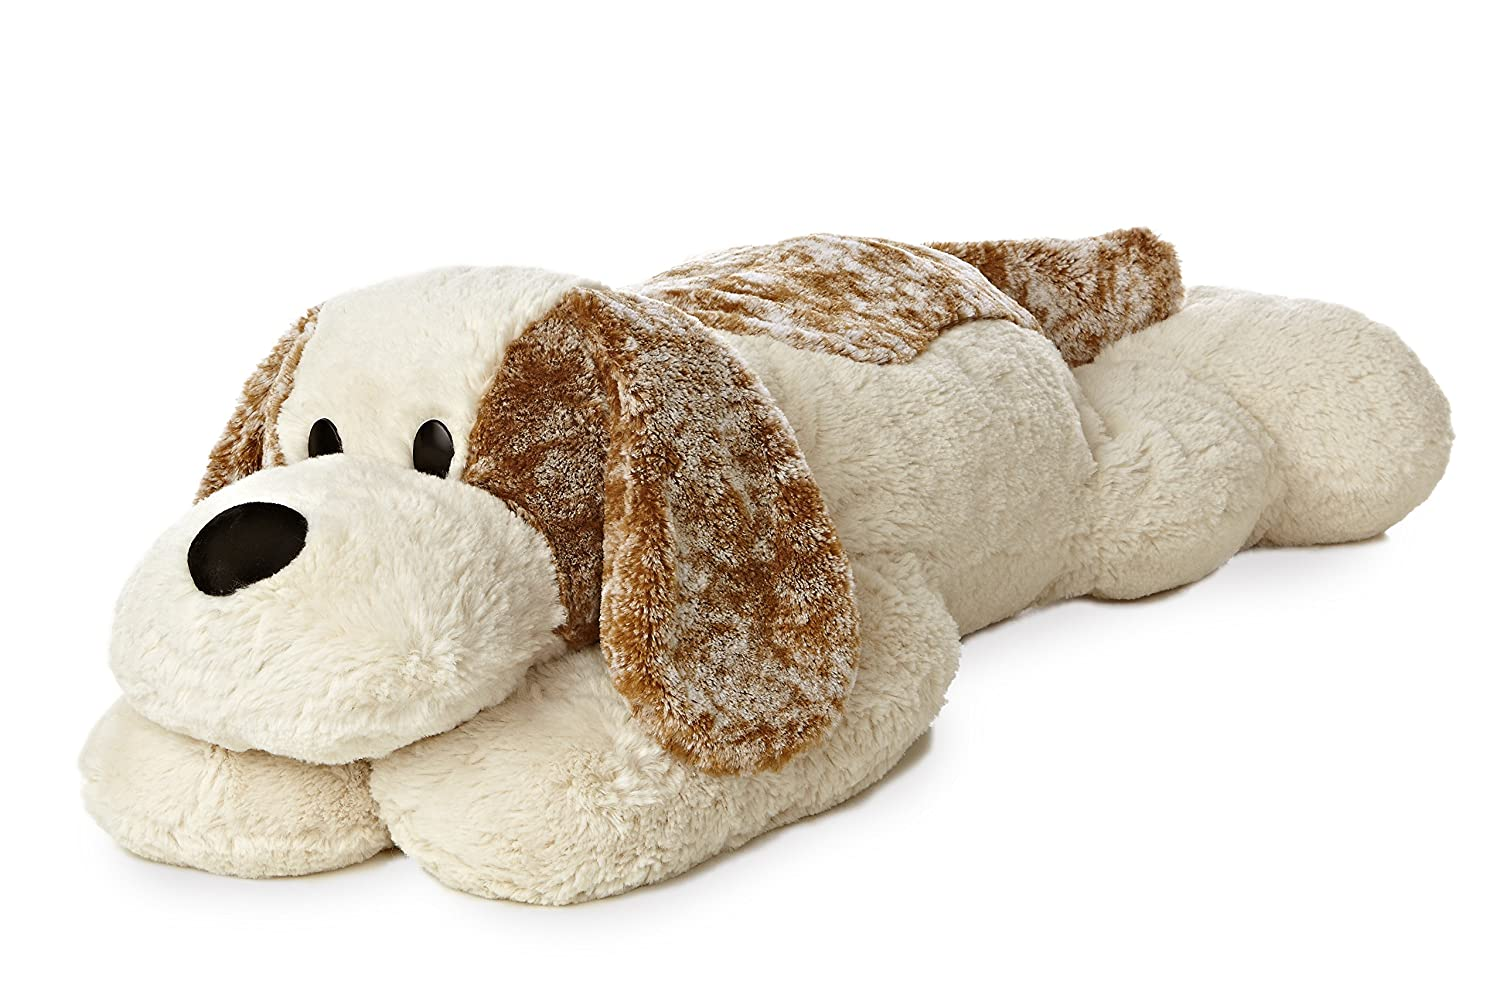 Plush Stuffed Animal Toys : Large plush animals